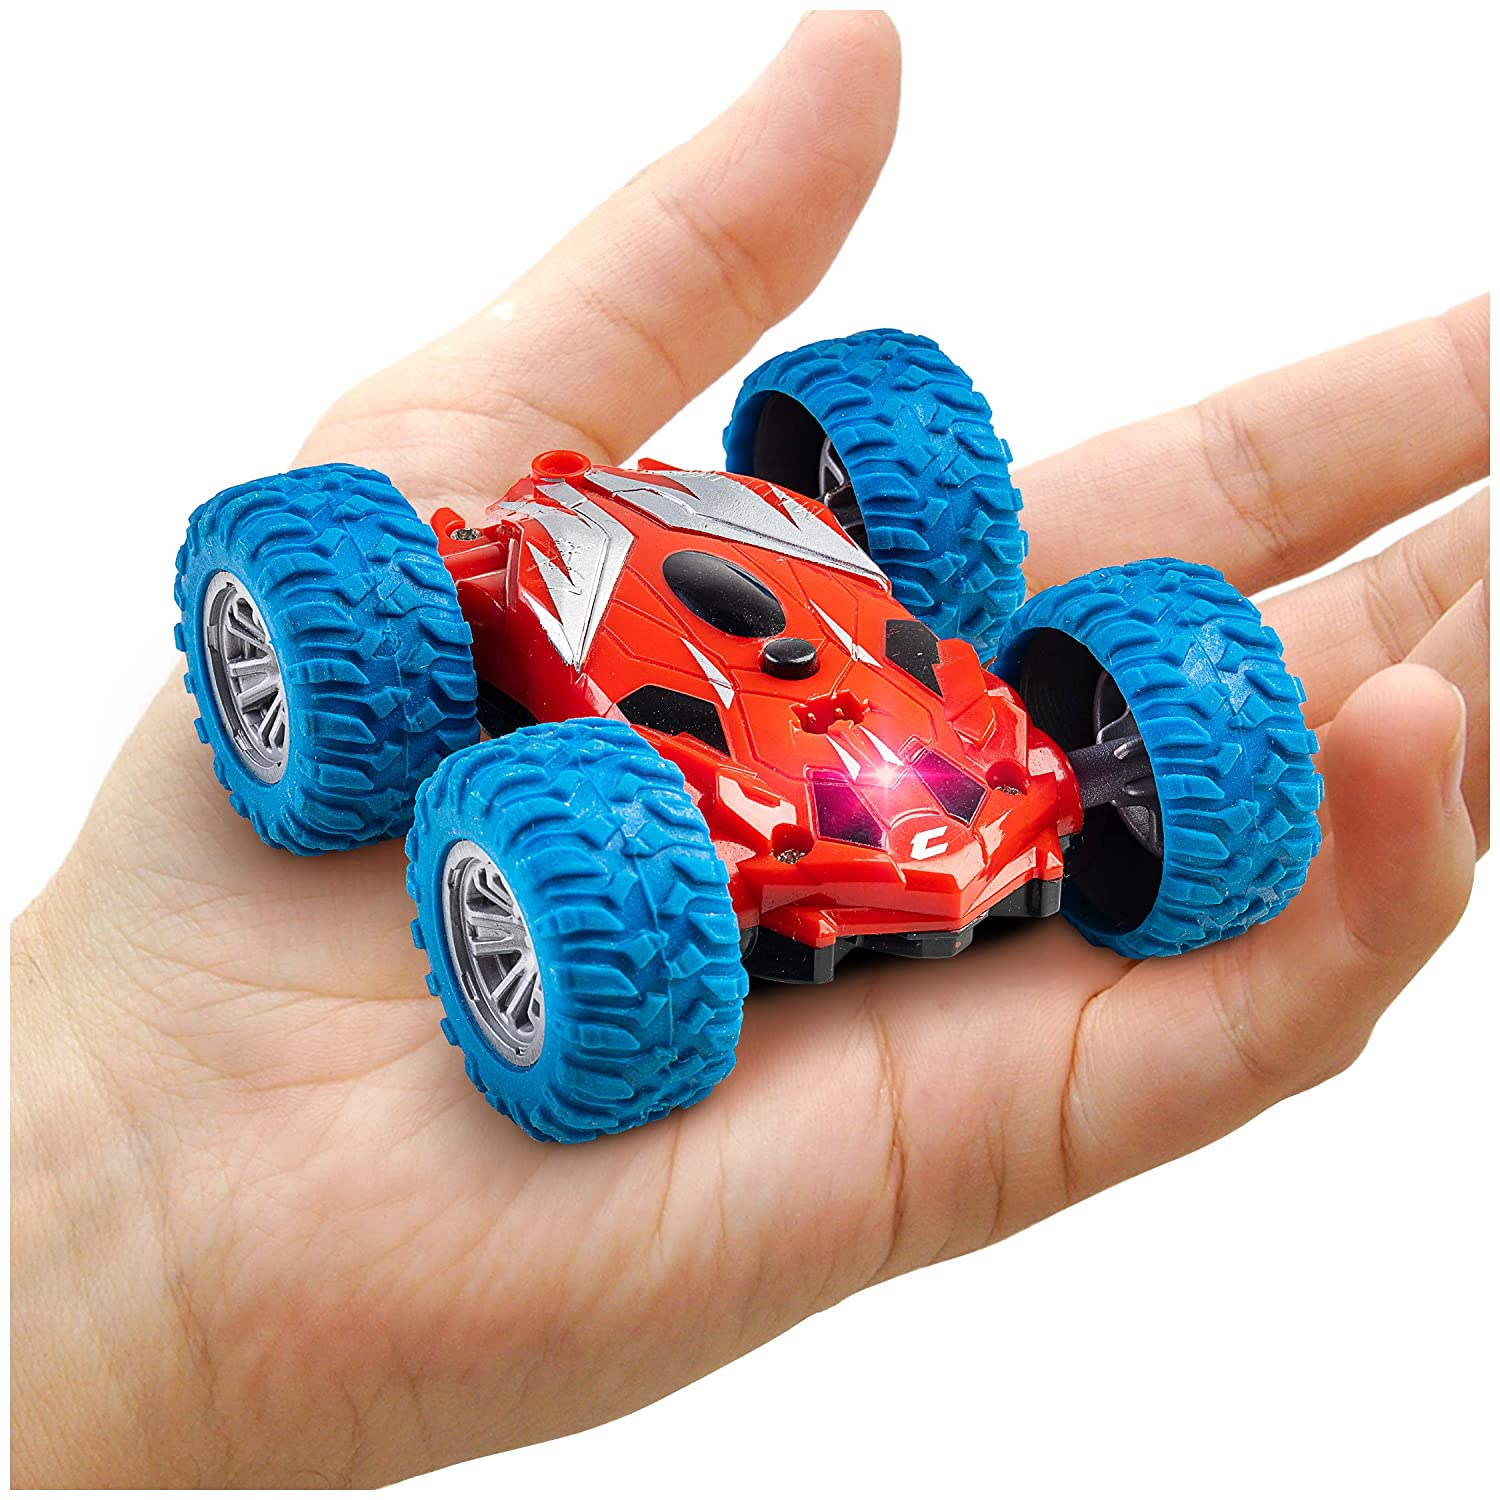 Cyclone Mini Remote Control Car for Kids - Double Sided Fast Off Road Stunt Mini RC Cars for Boys and Girls, RC Flip Car